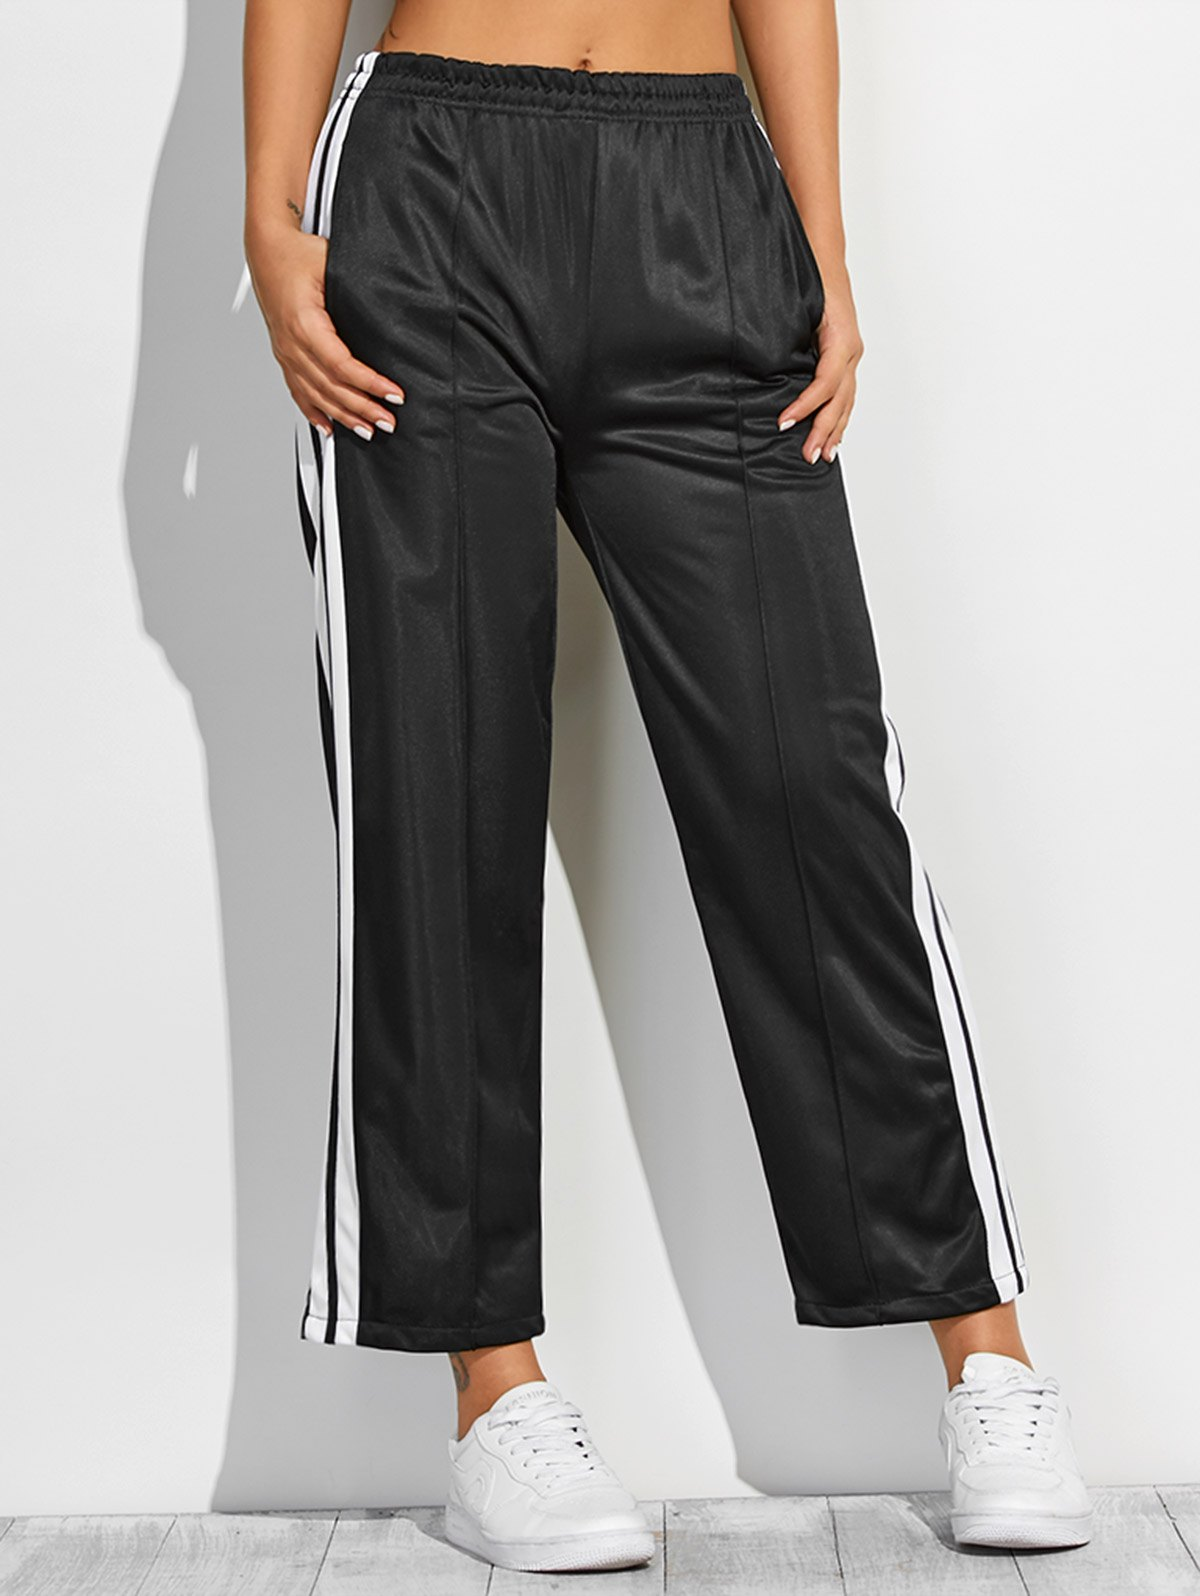 White Stripes Furcal Fitting Track Pants